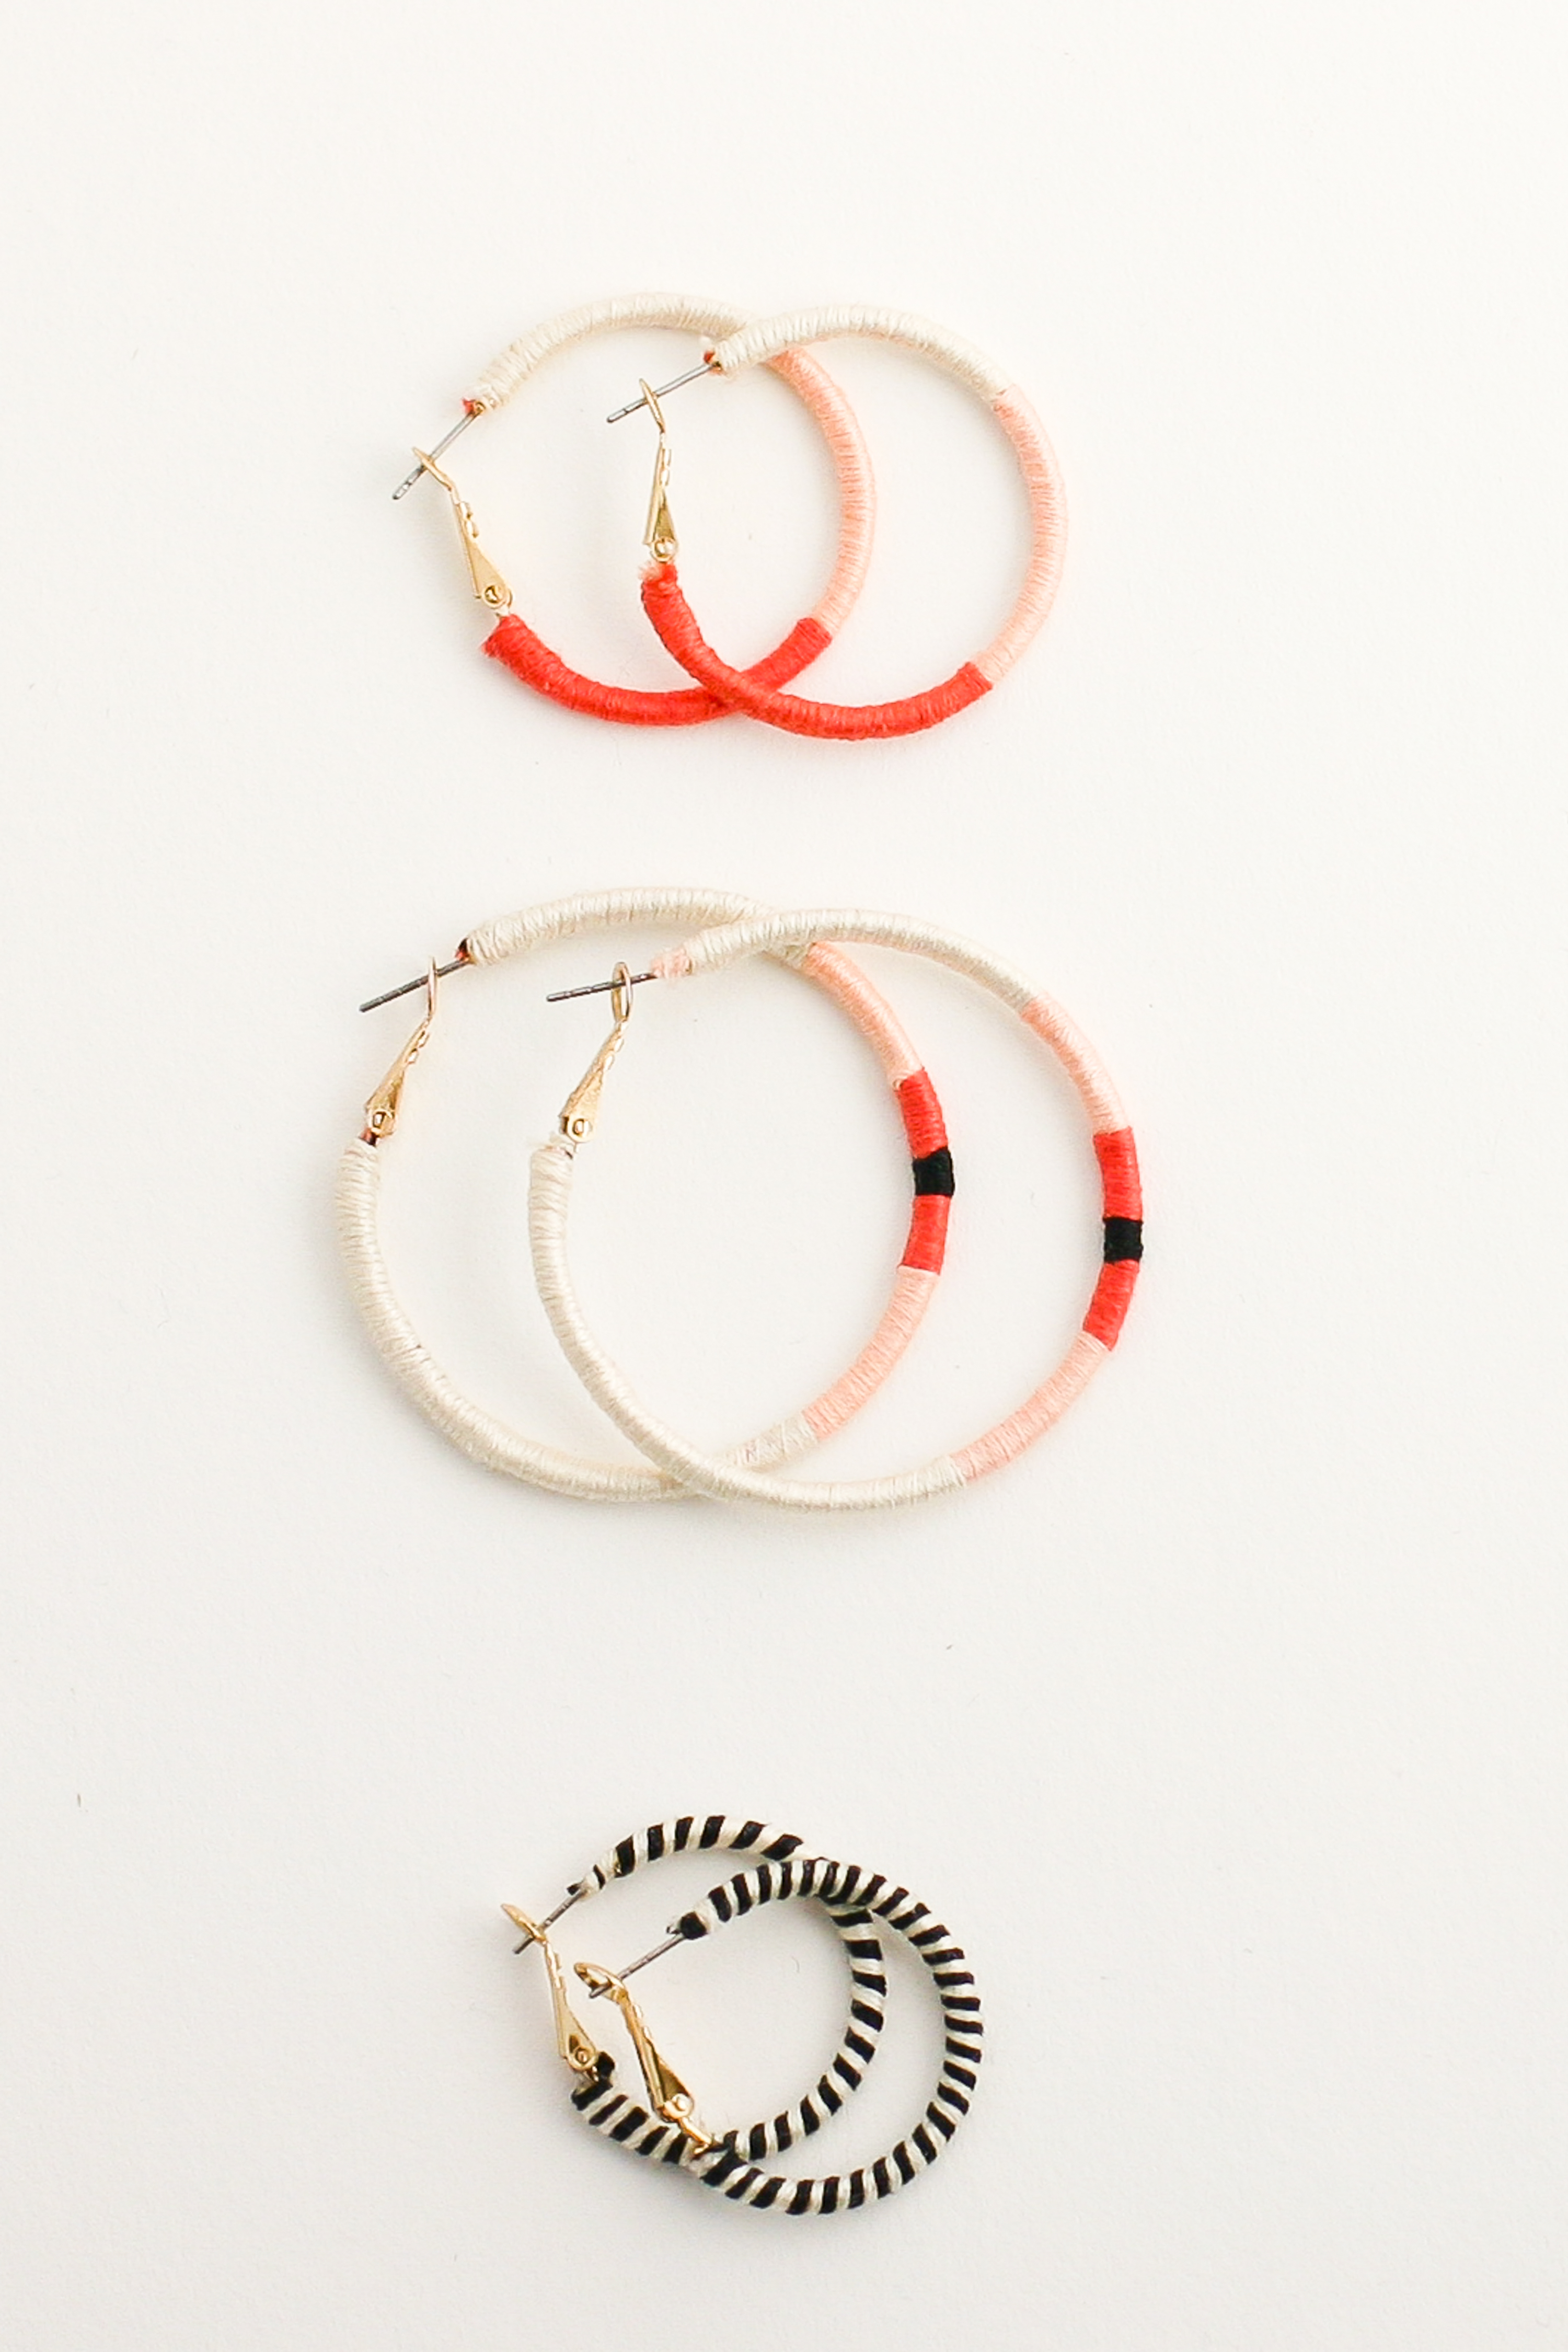 Embroidery Thread Wrapped Hoop Earrings Diy Flax Twine